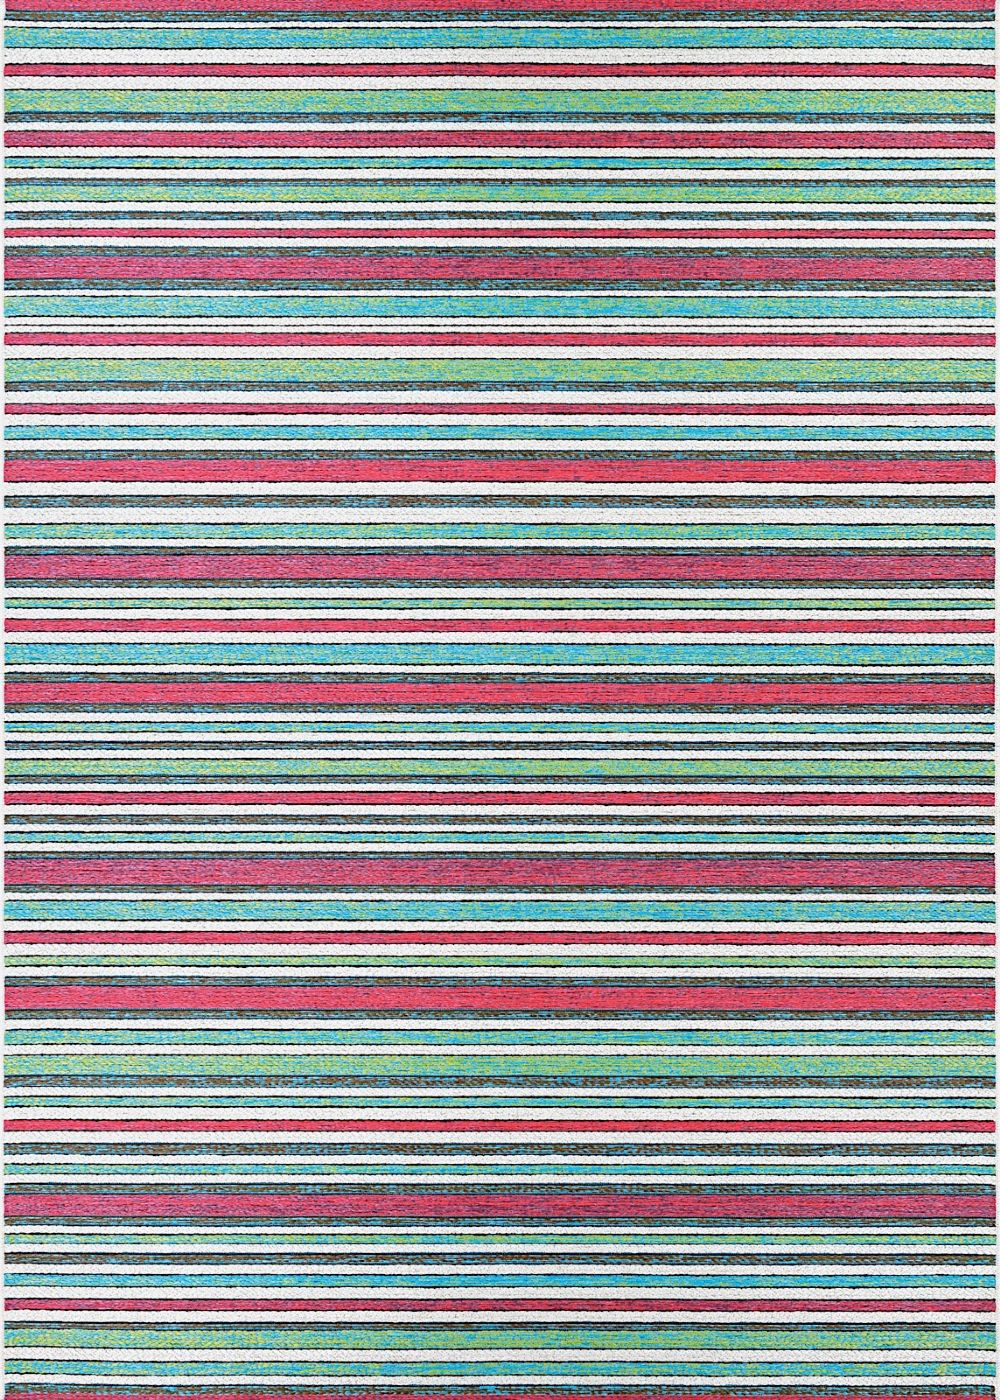 couristan cape solid/striped area rug collection